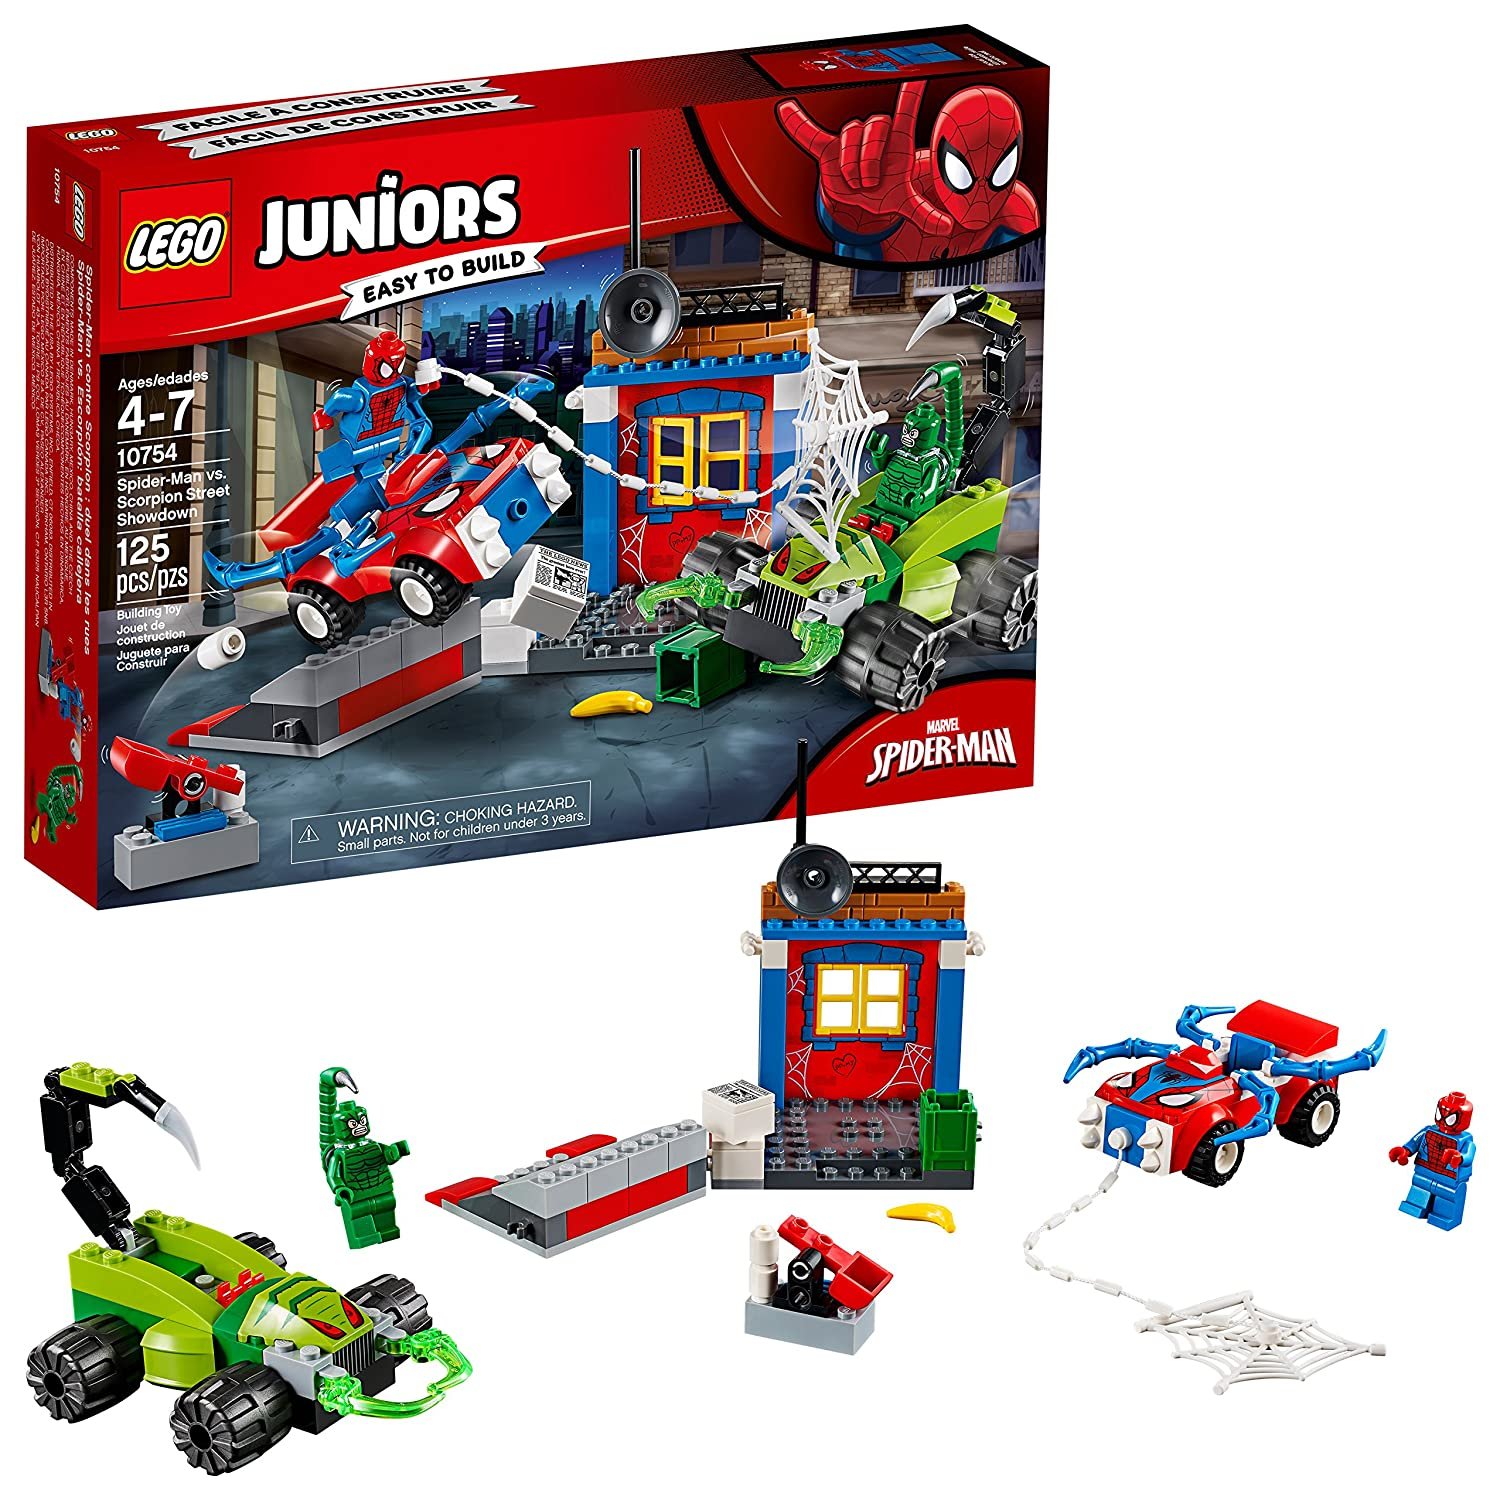 LEGO Juniors/4+ Marvel Super Heroes Spider-Man vs. Scorpion Street Showdown